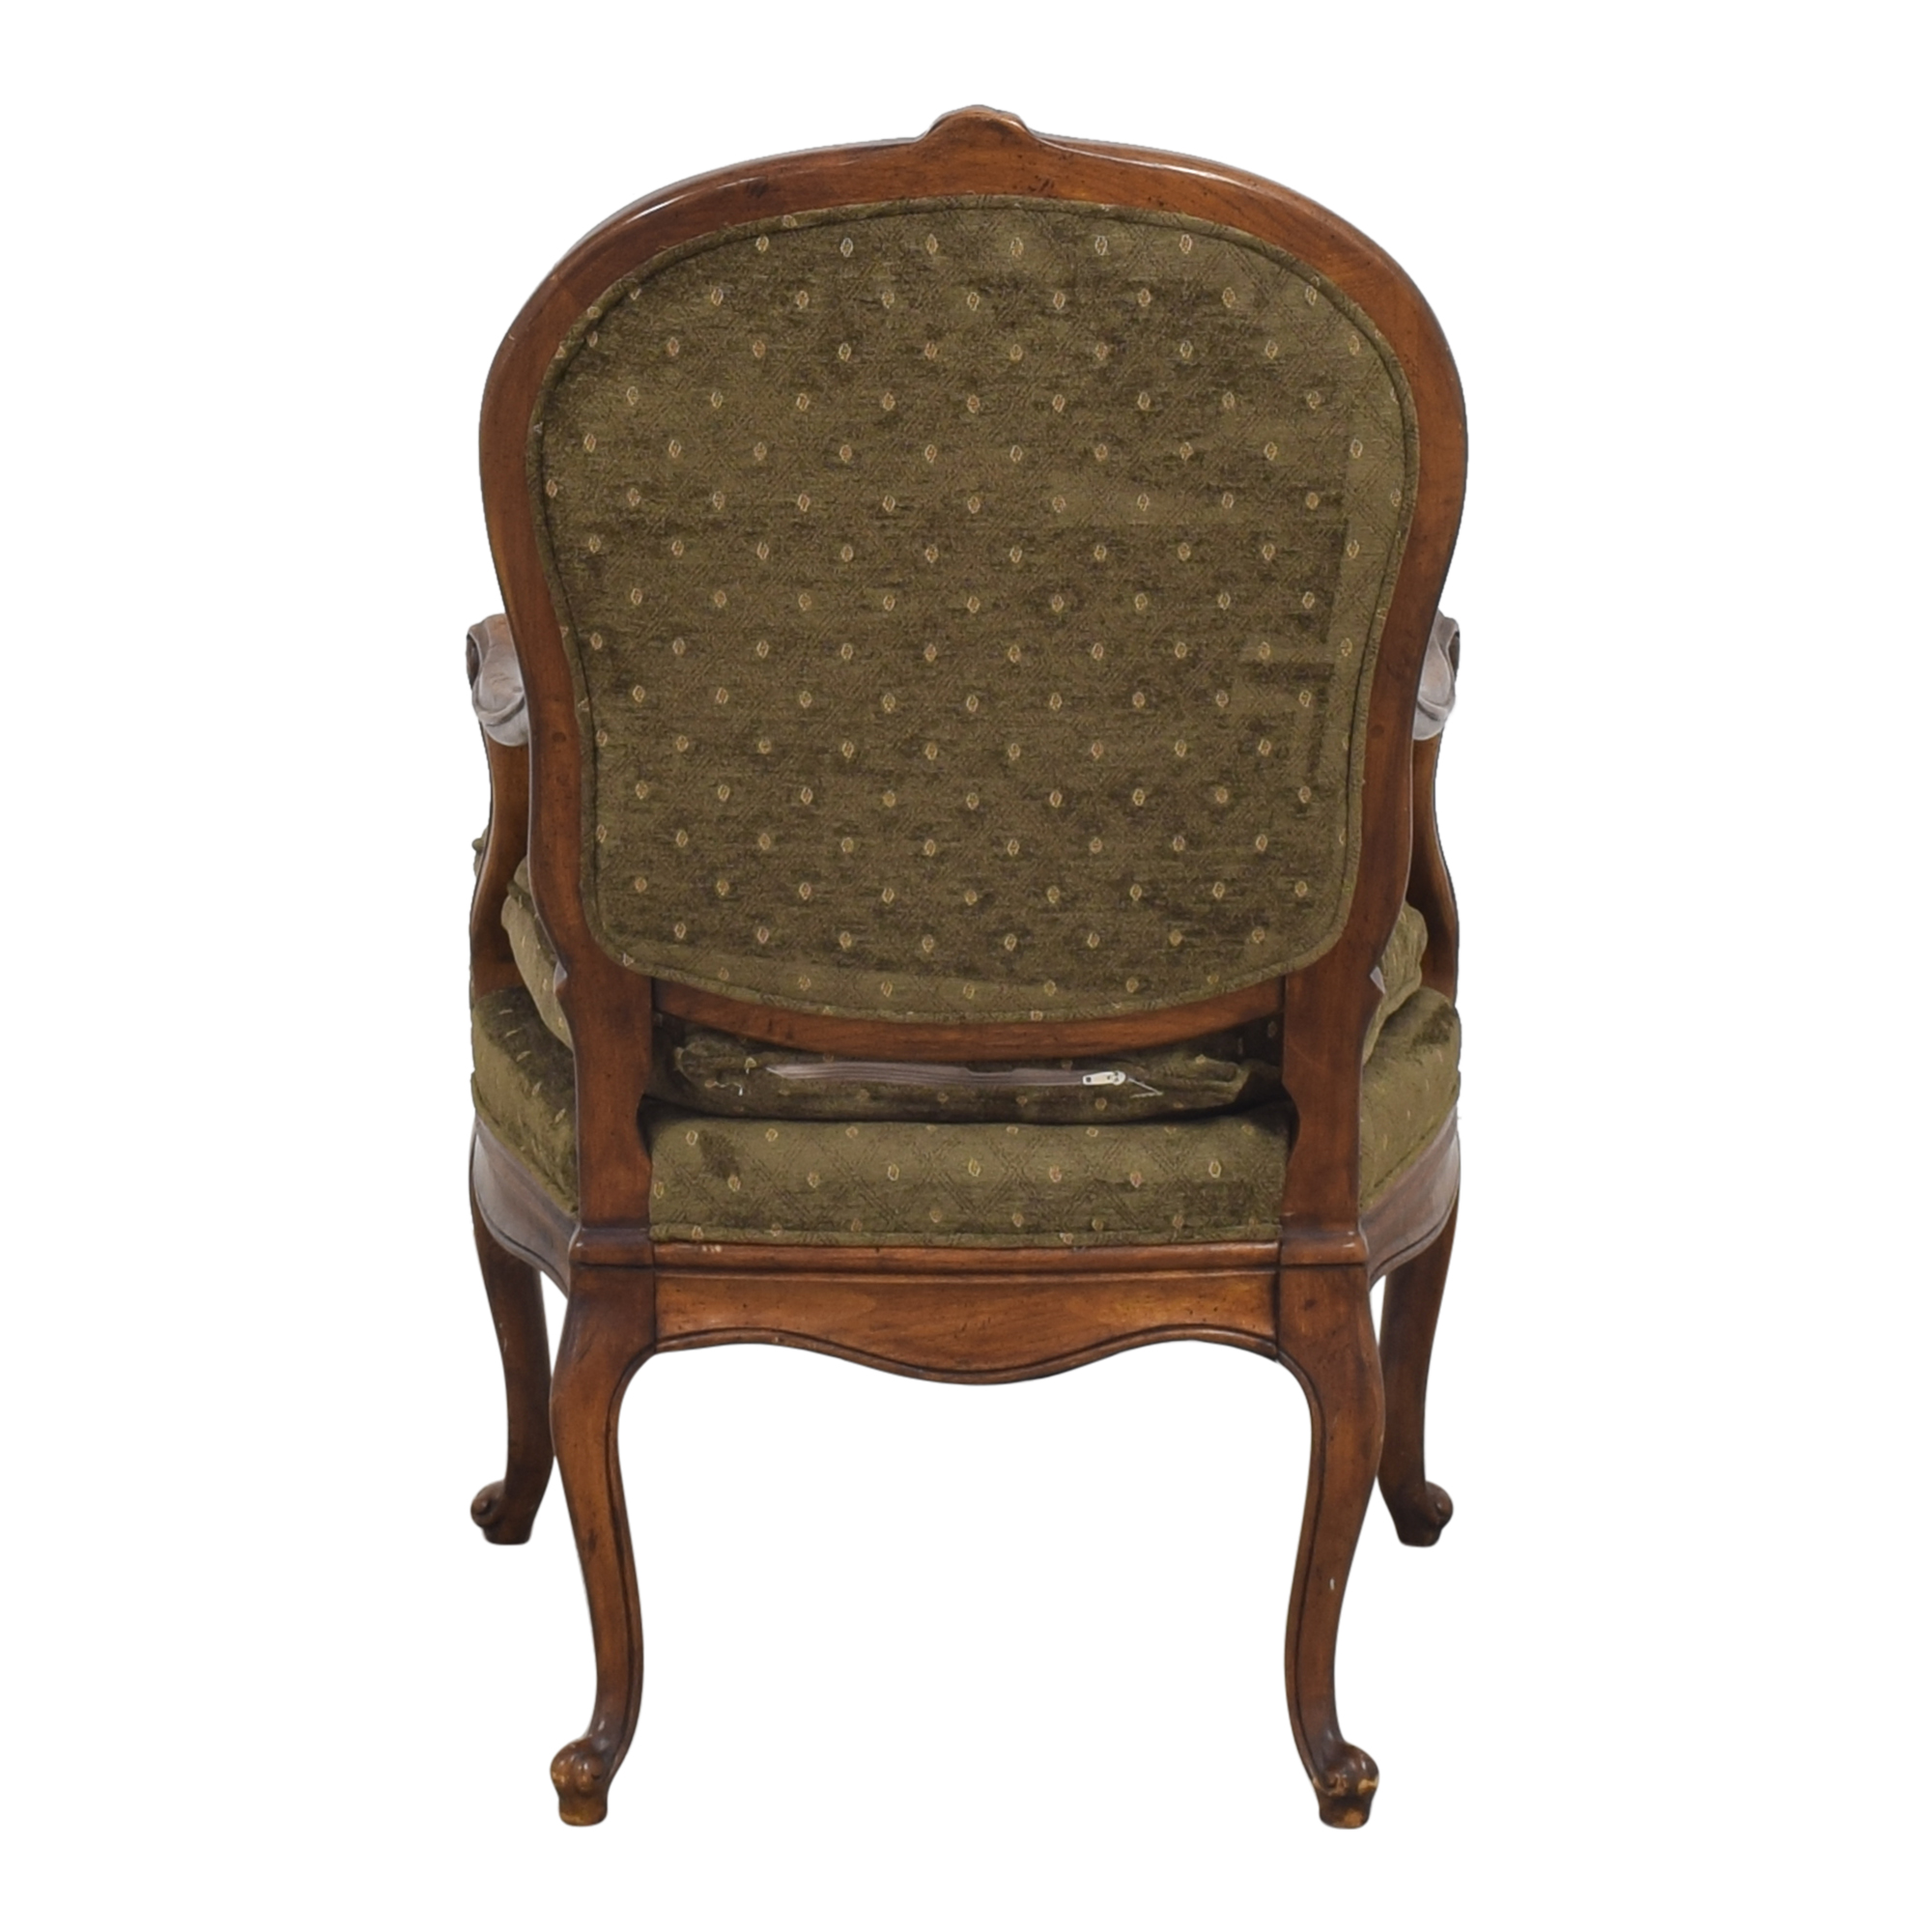 W. & J. Sloane Queen Anne Chair / Chairs